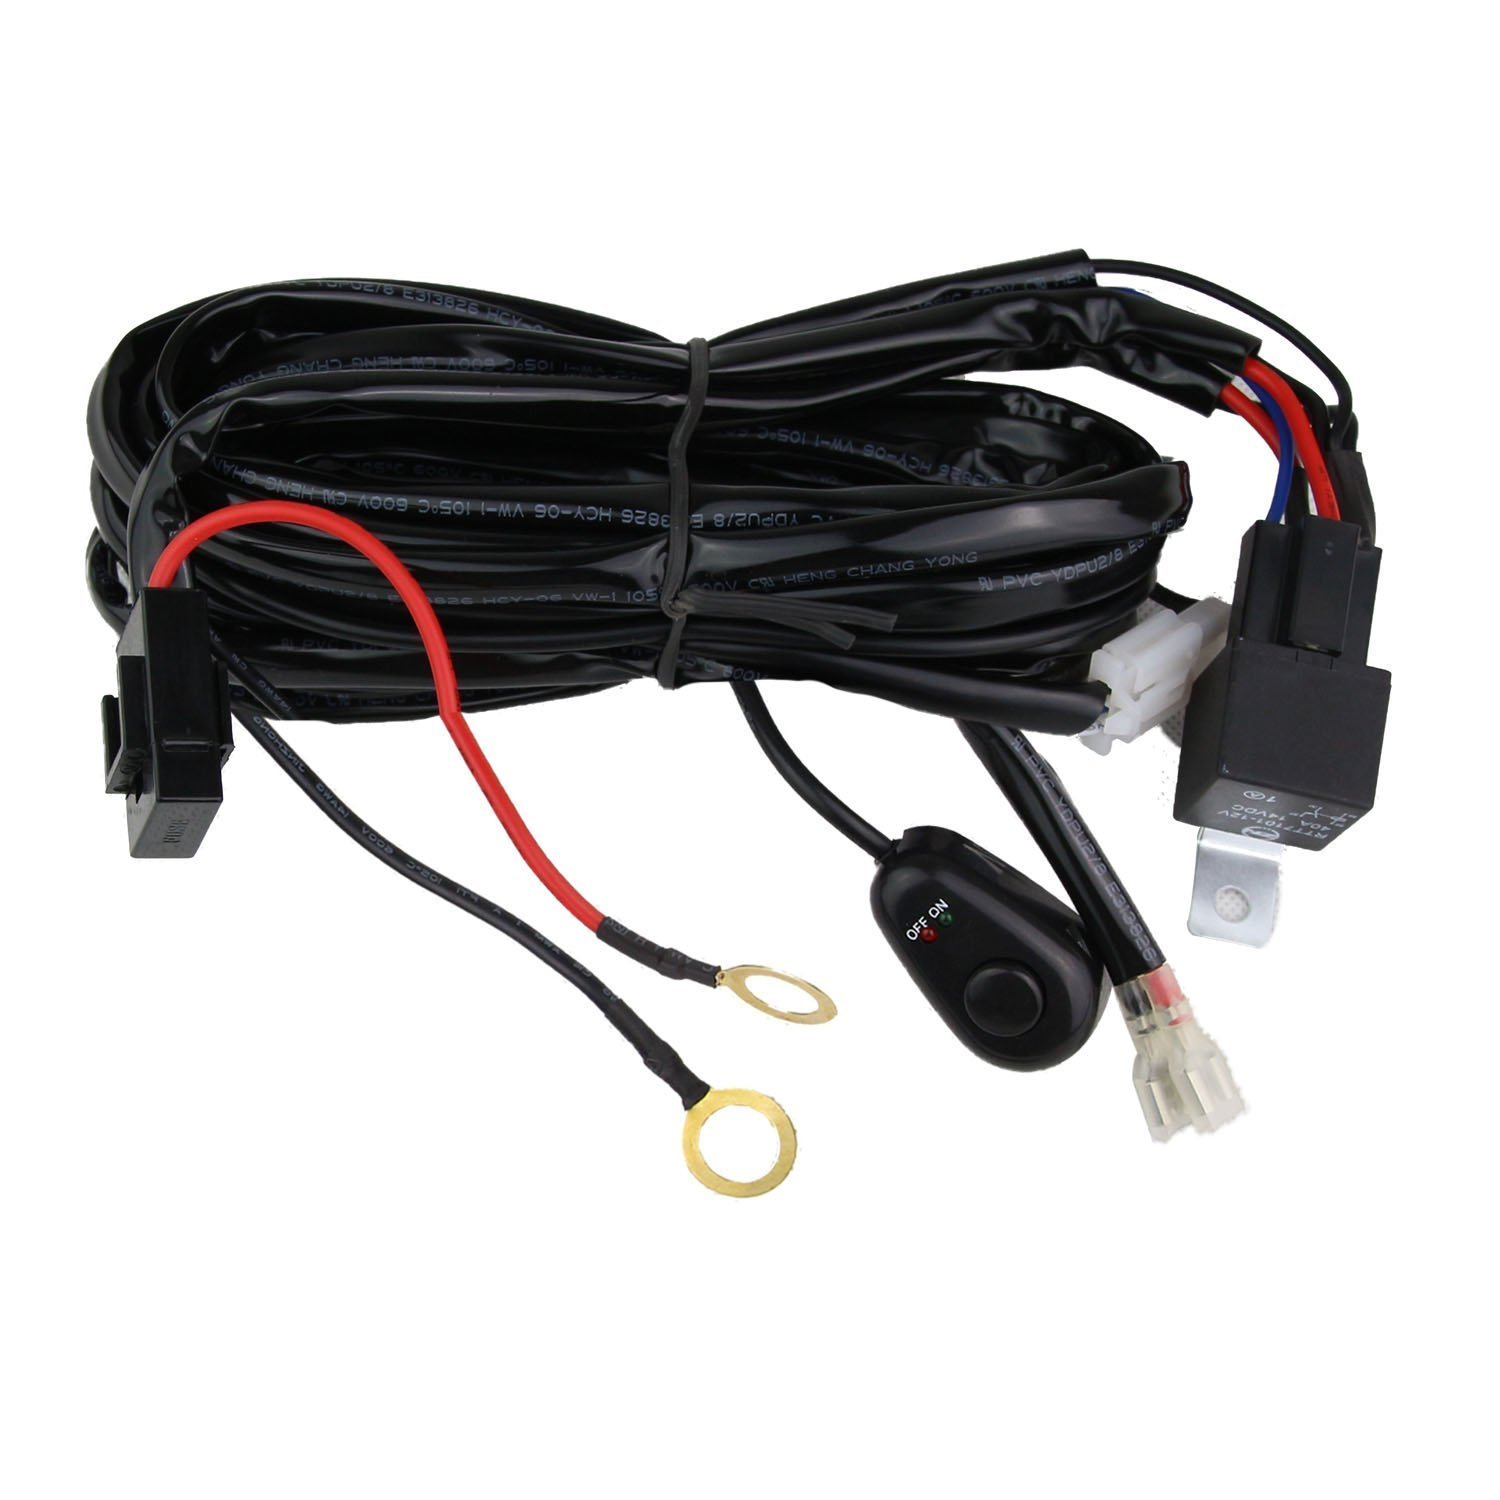 71xZ3MgxymL._SL1500_ amazon com northpole light led light bar wiring harness, 12v 40a